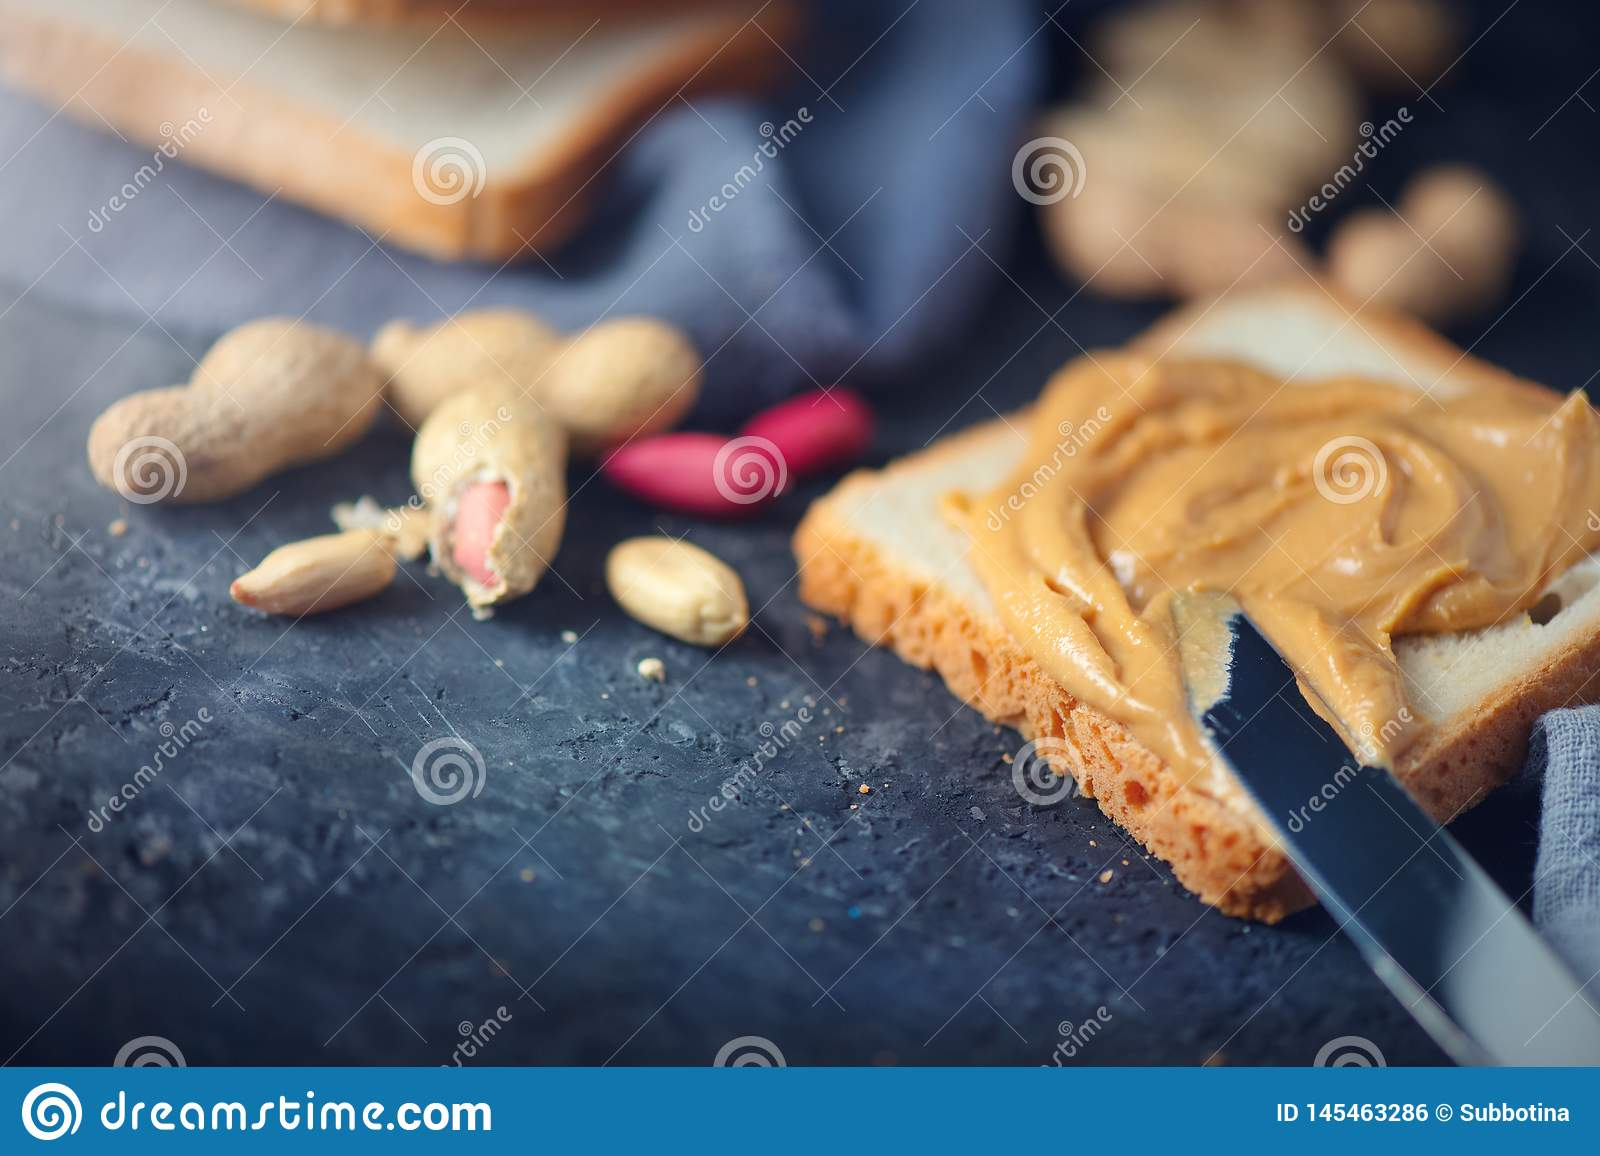 Peanut butter. Person making peanut butter sandwiches, healthy food. Woman smears butter with a knife